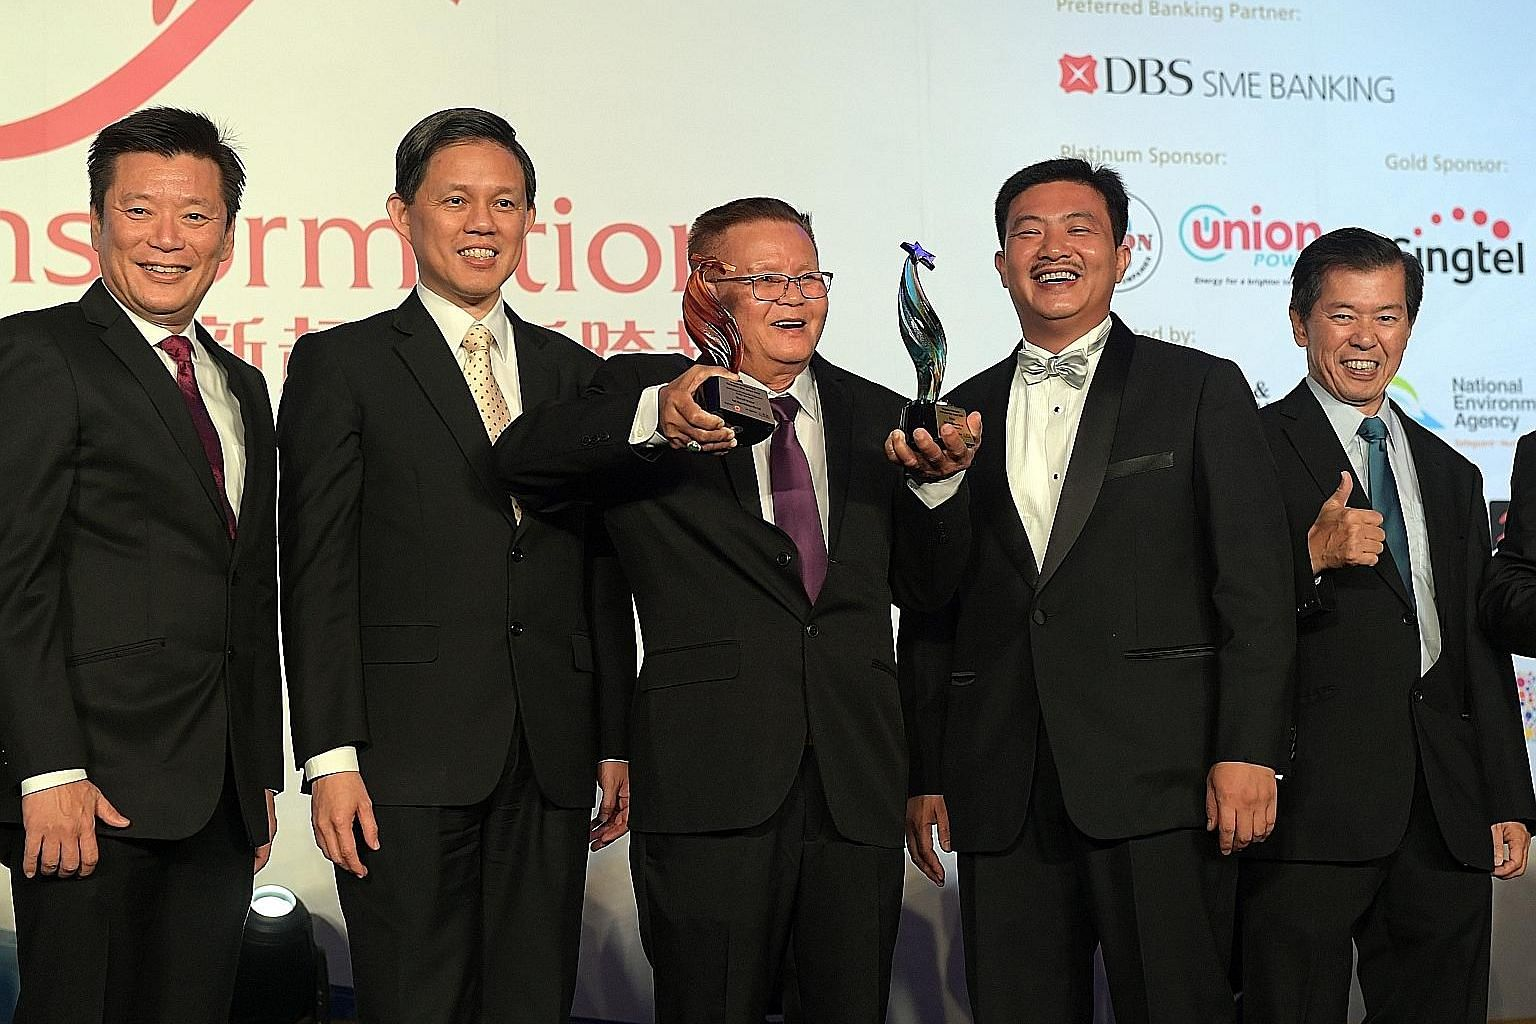 At last night's Singapore Heartland Enterprise Star Awards were (from left) Mr Goh Sin Teck, editor of Lianhe Zaobao and Lianhe Wanbao; Minister for Trade and Industry Chan Chun Sing; Poh Cheu Kitchen founder Neo Poh Cheu, the overall award winner in